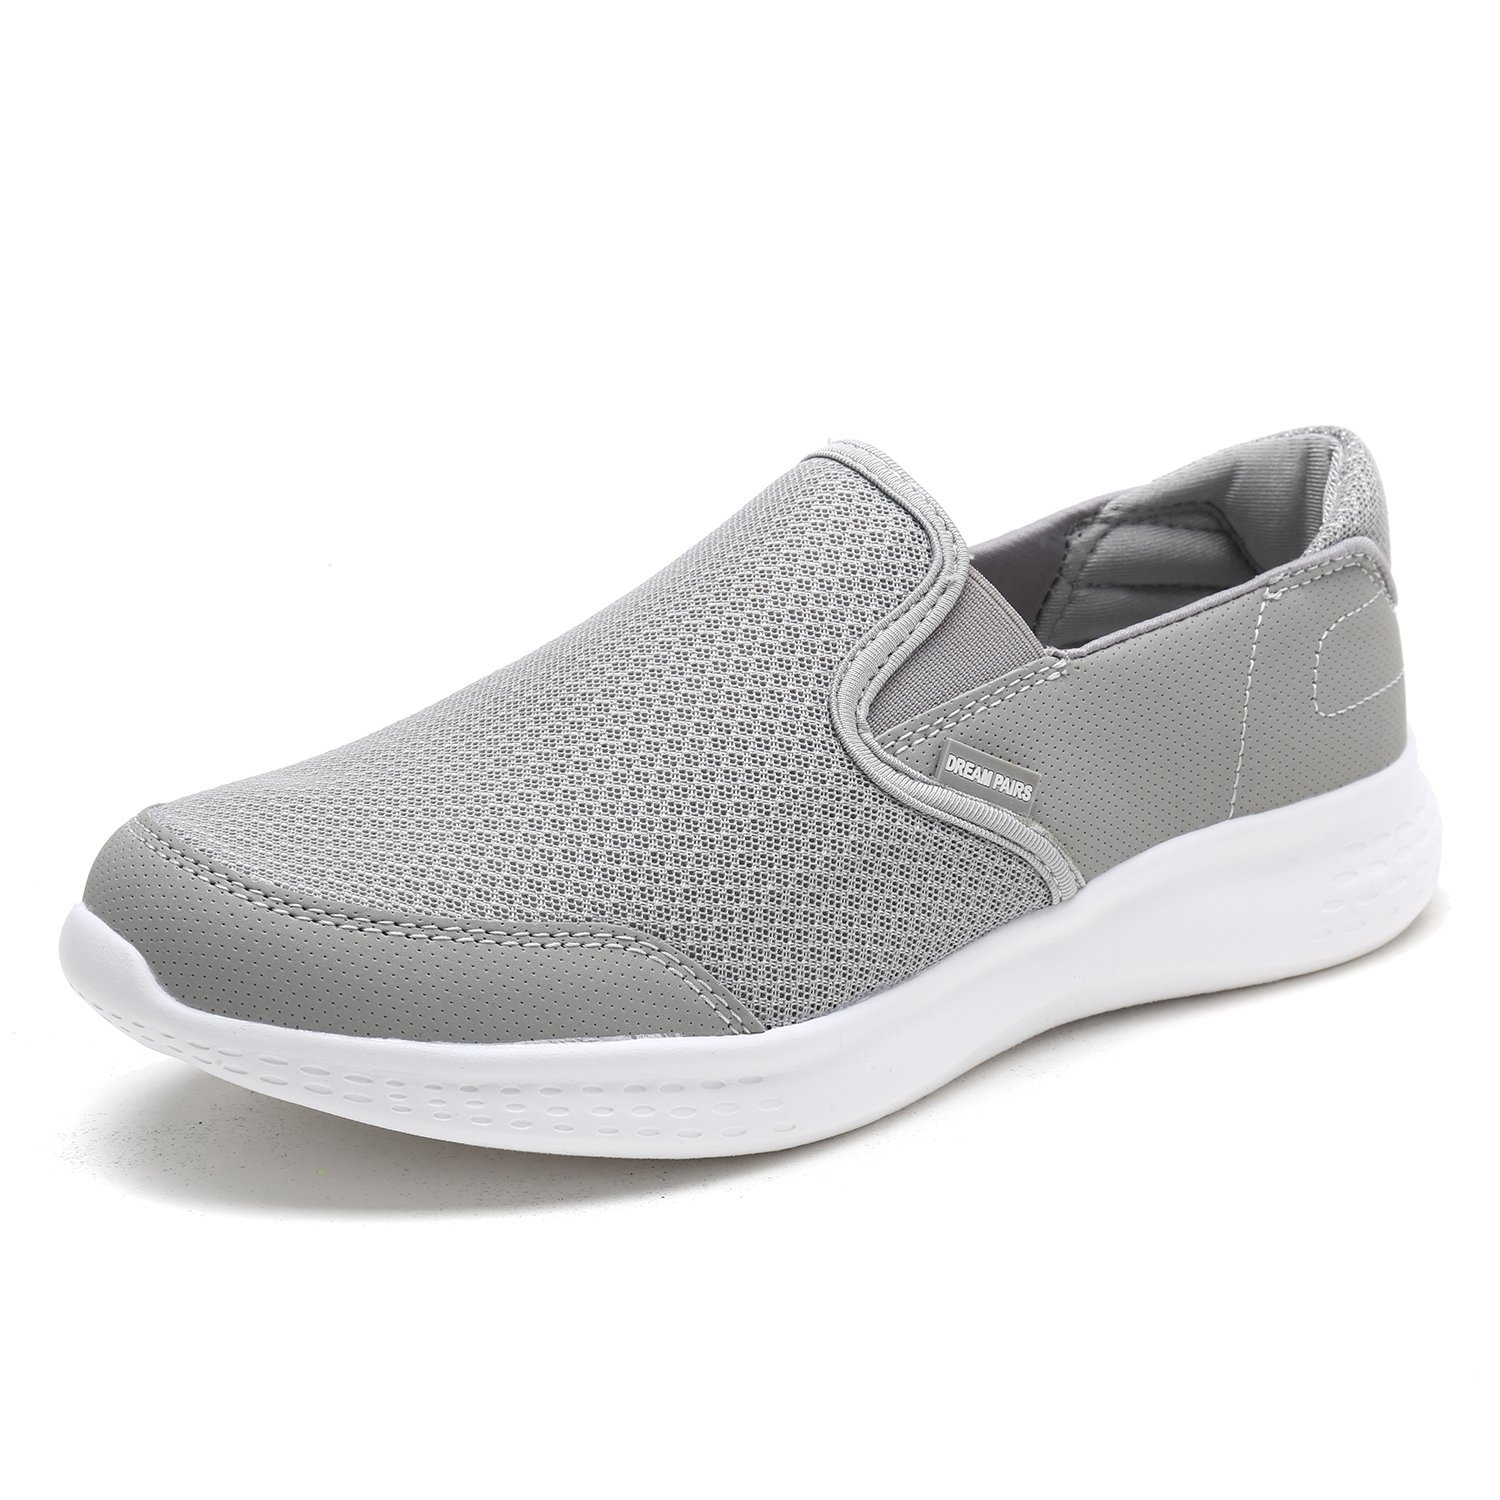 DREAM PAIRS Men's 150908 New Grey Fashion Running Shoes Sneakers Size 10 M US